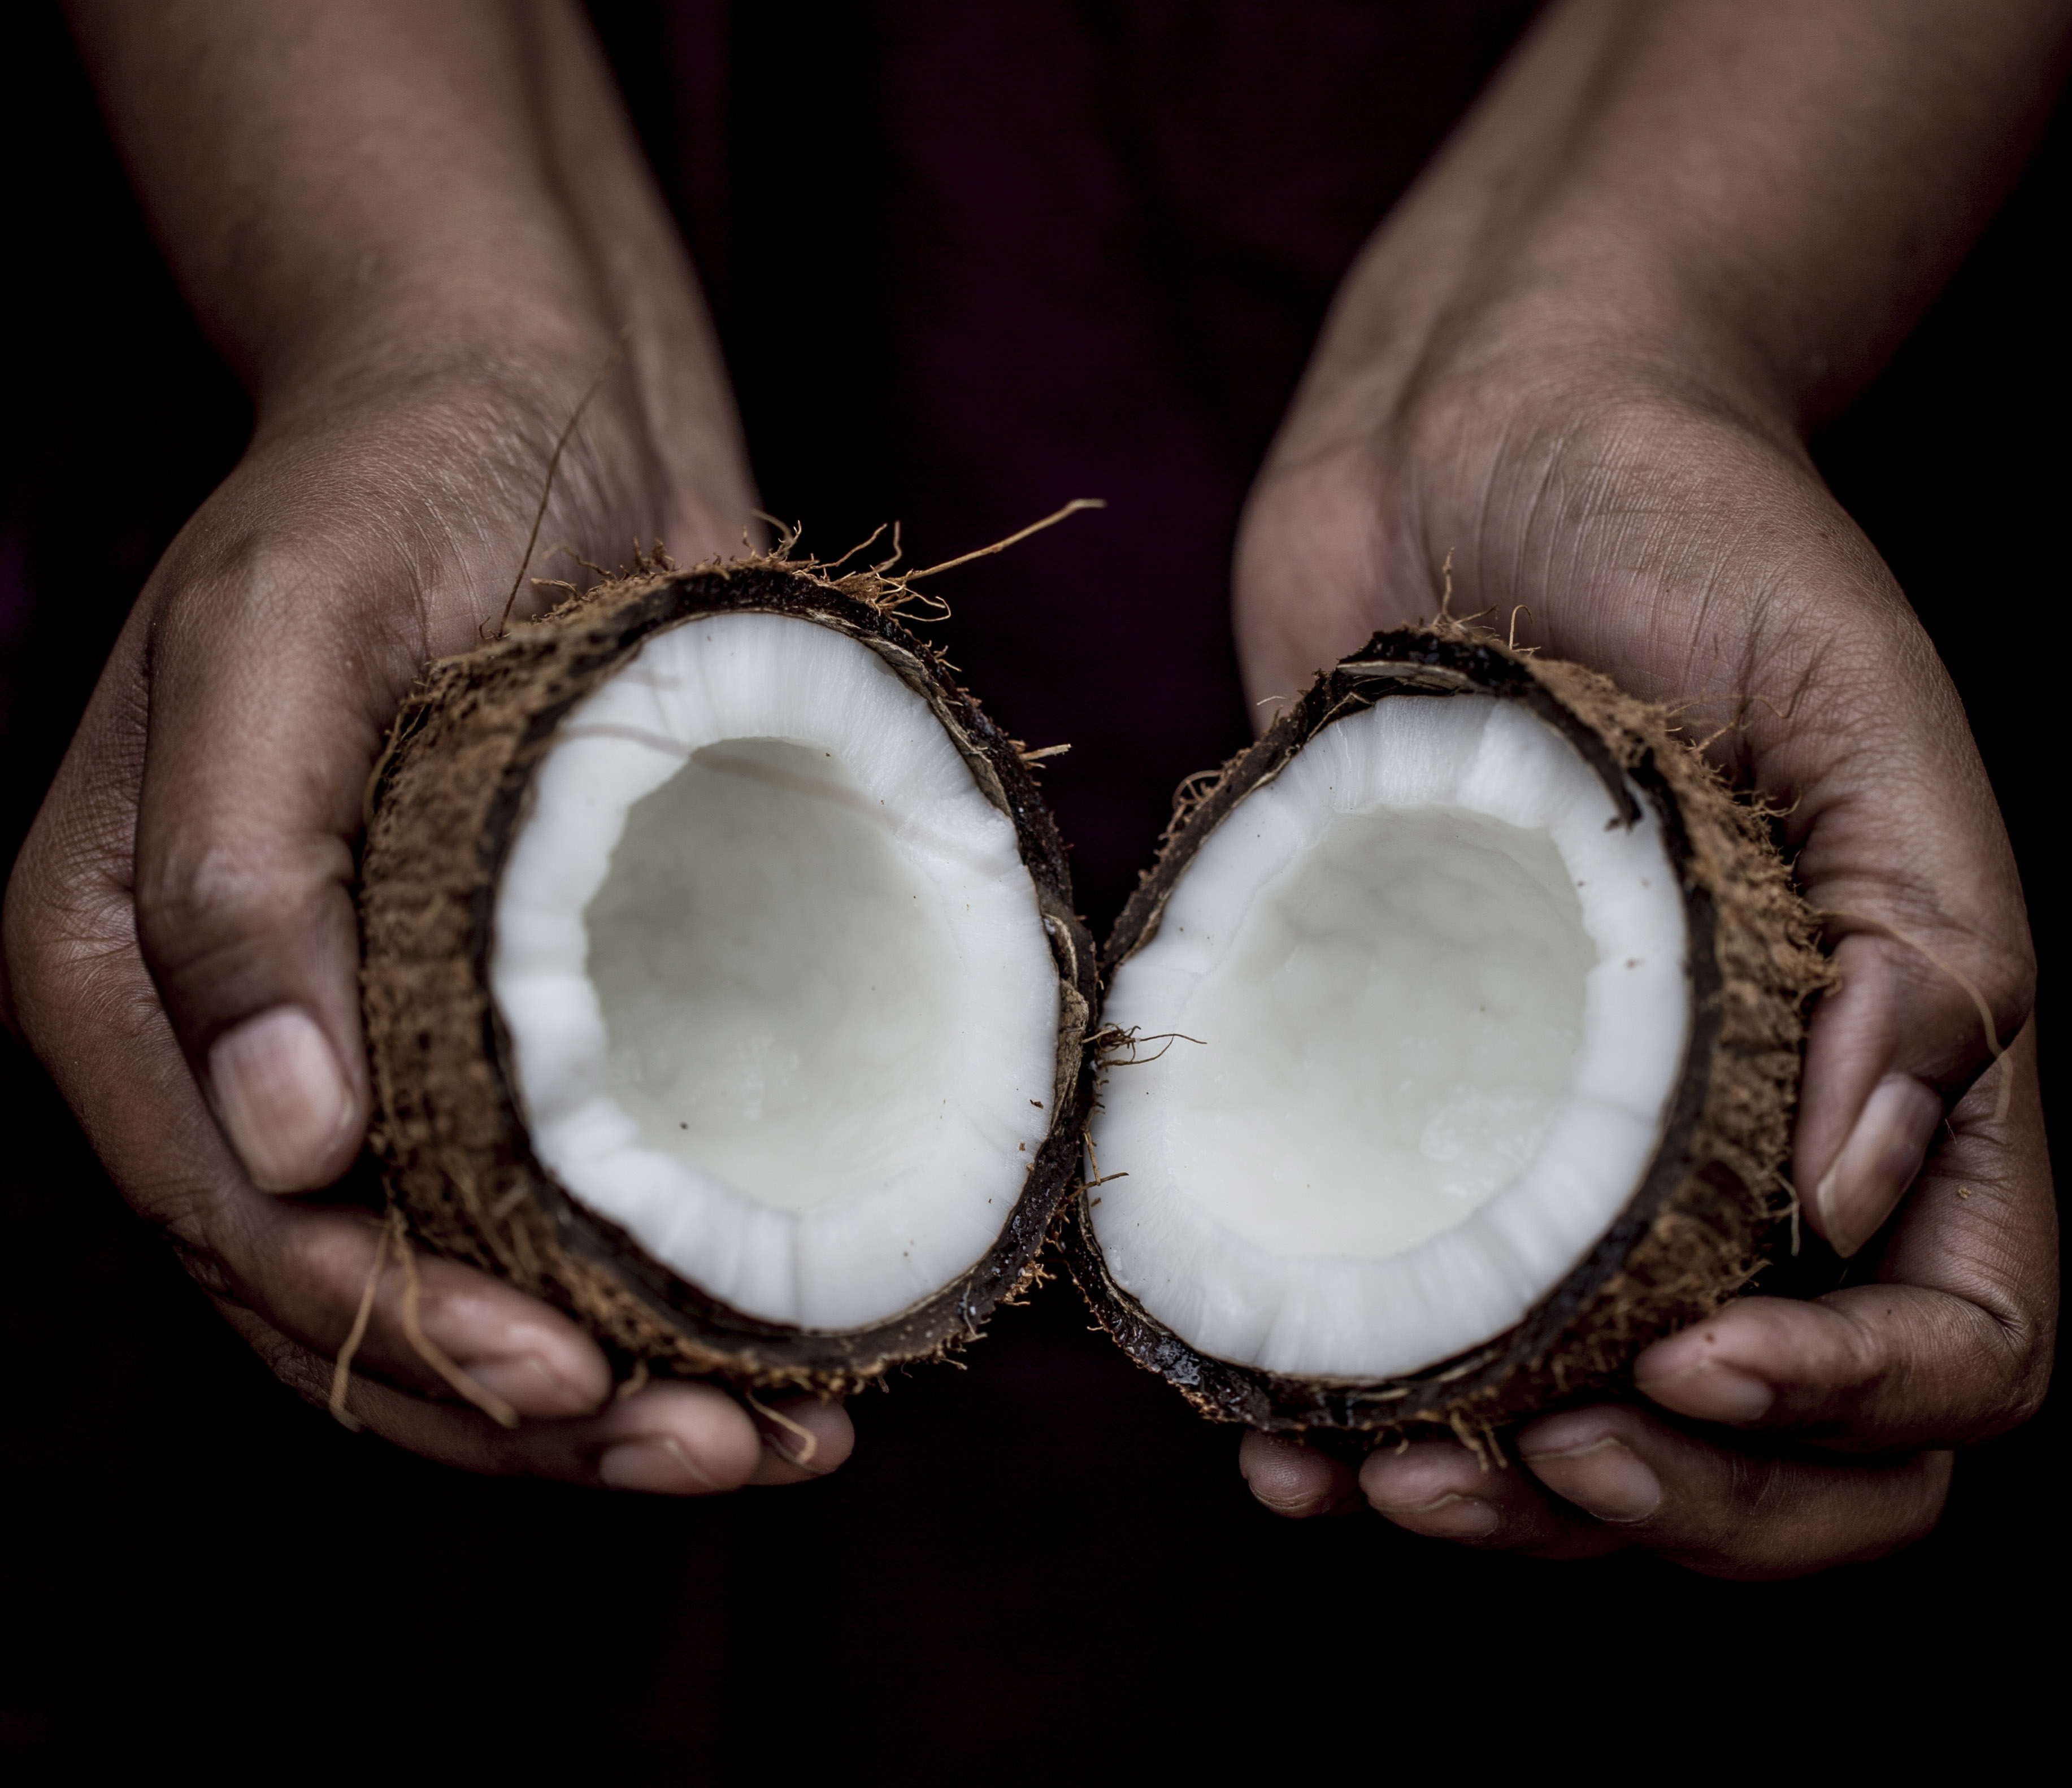 Rosemary Stanton: Five claims about coconut oil debunked - NZ Herald